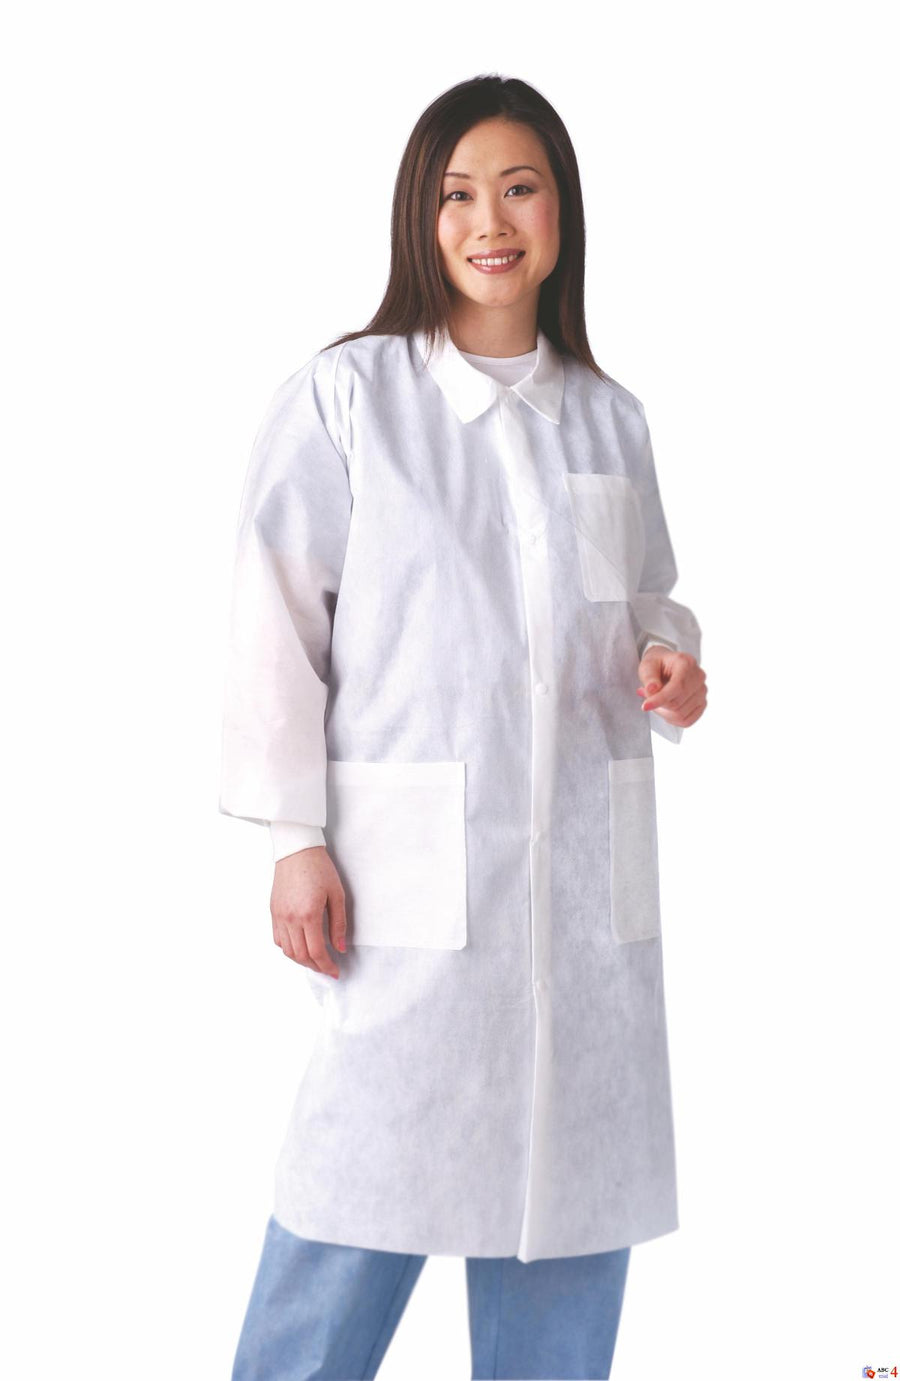 Disposable Knit Cuff / Traditional Collar Multi-Layer Lab Coats,White,Small, Cas